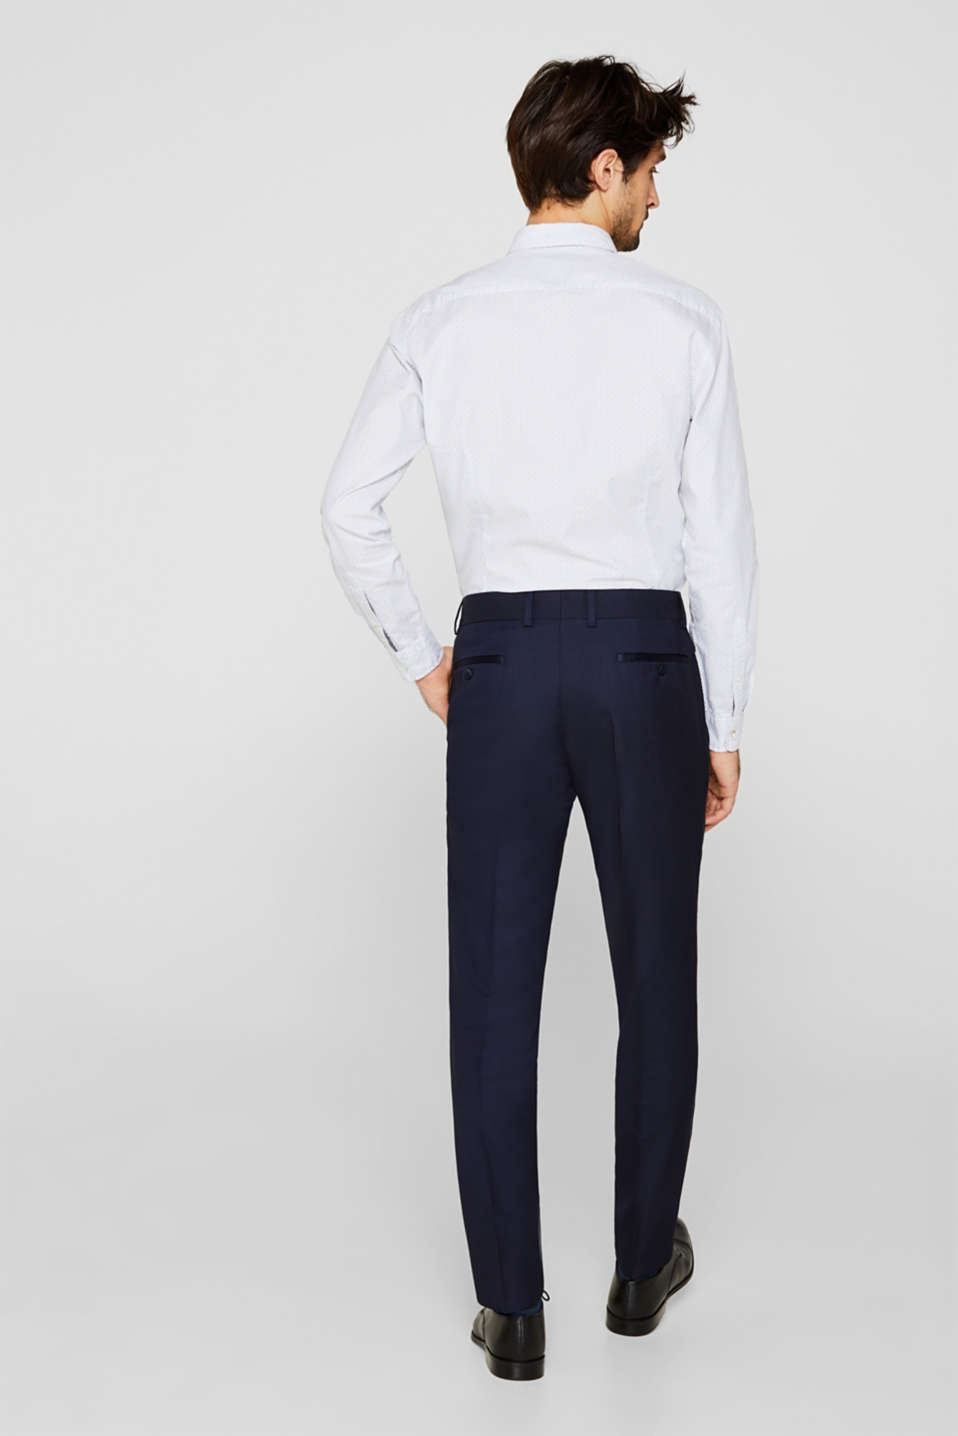 BLUE DINNER JACKET Mix + Match: Trousers with side stripes, NAVY, detail image number 1